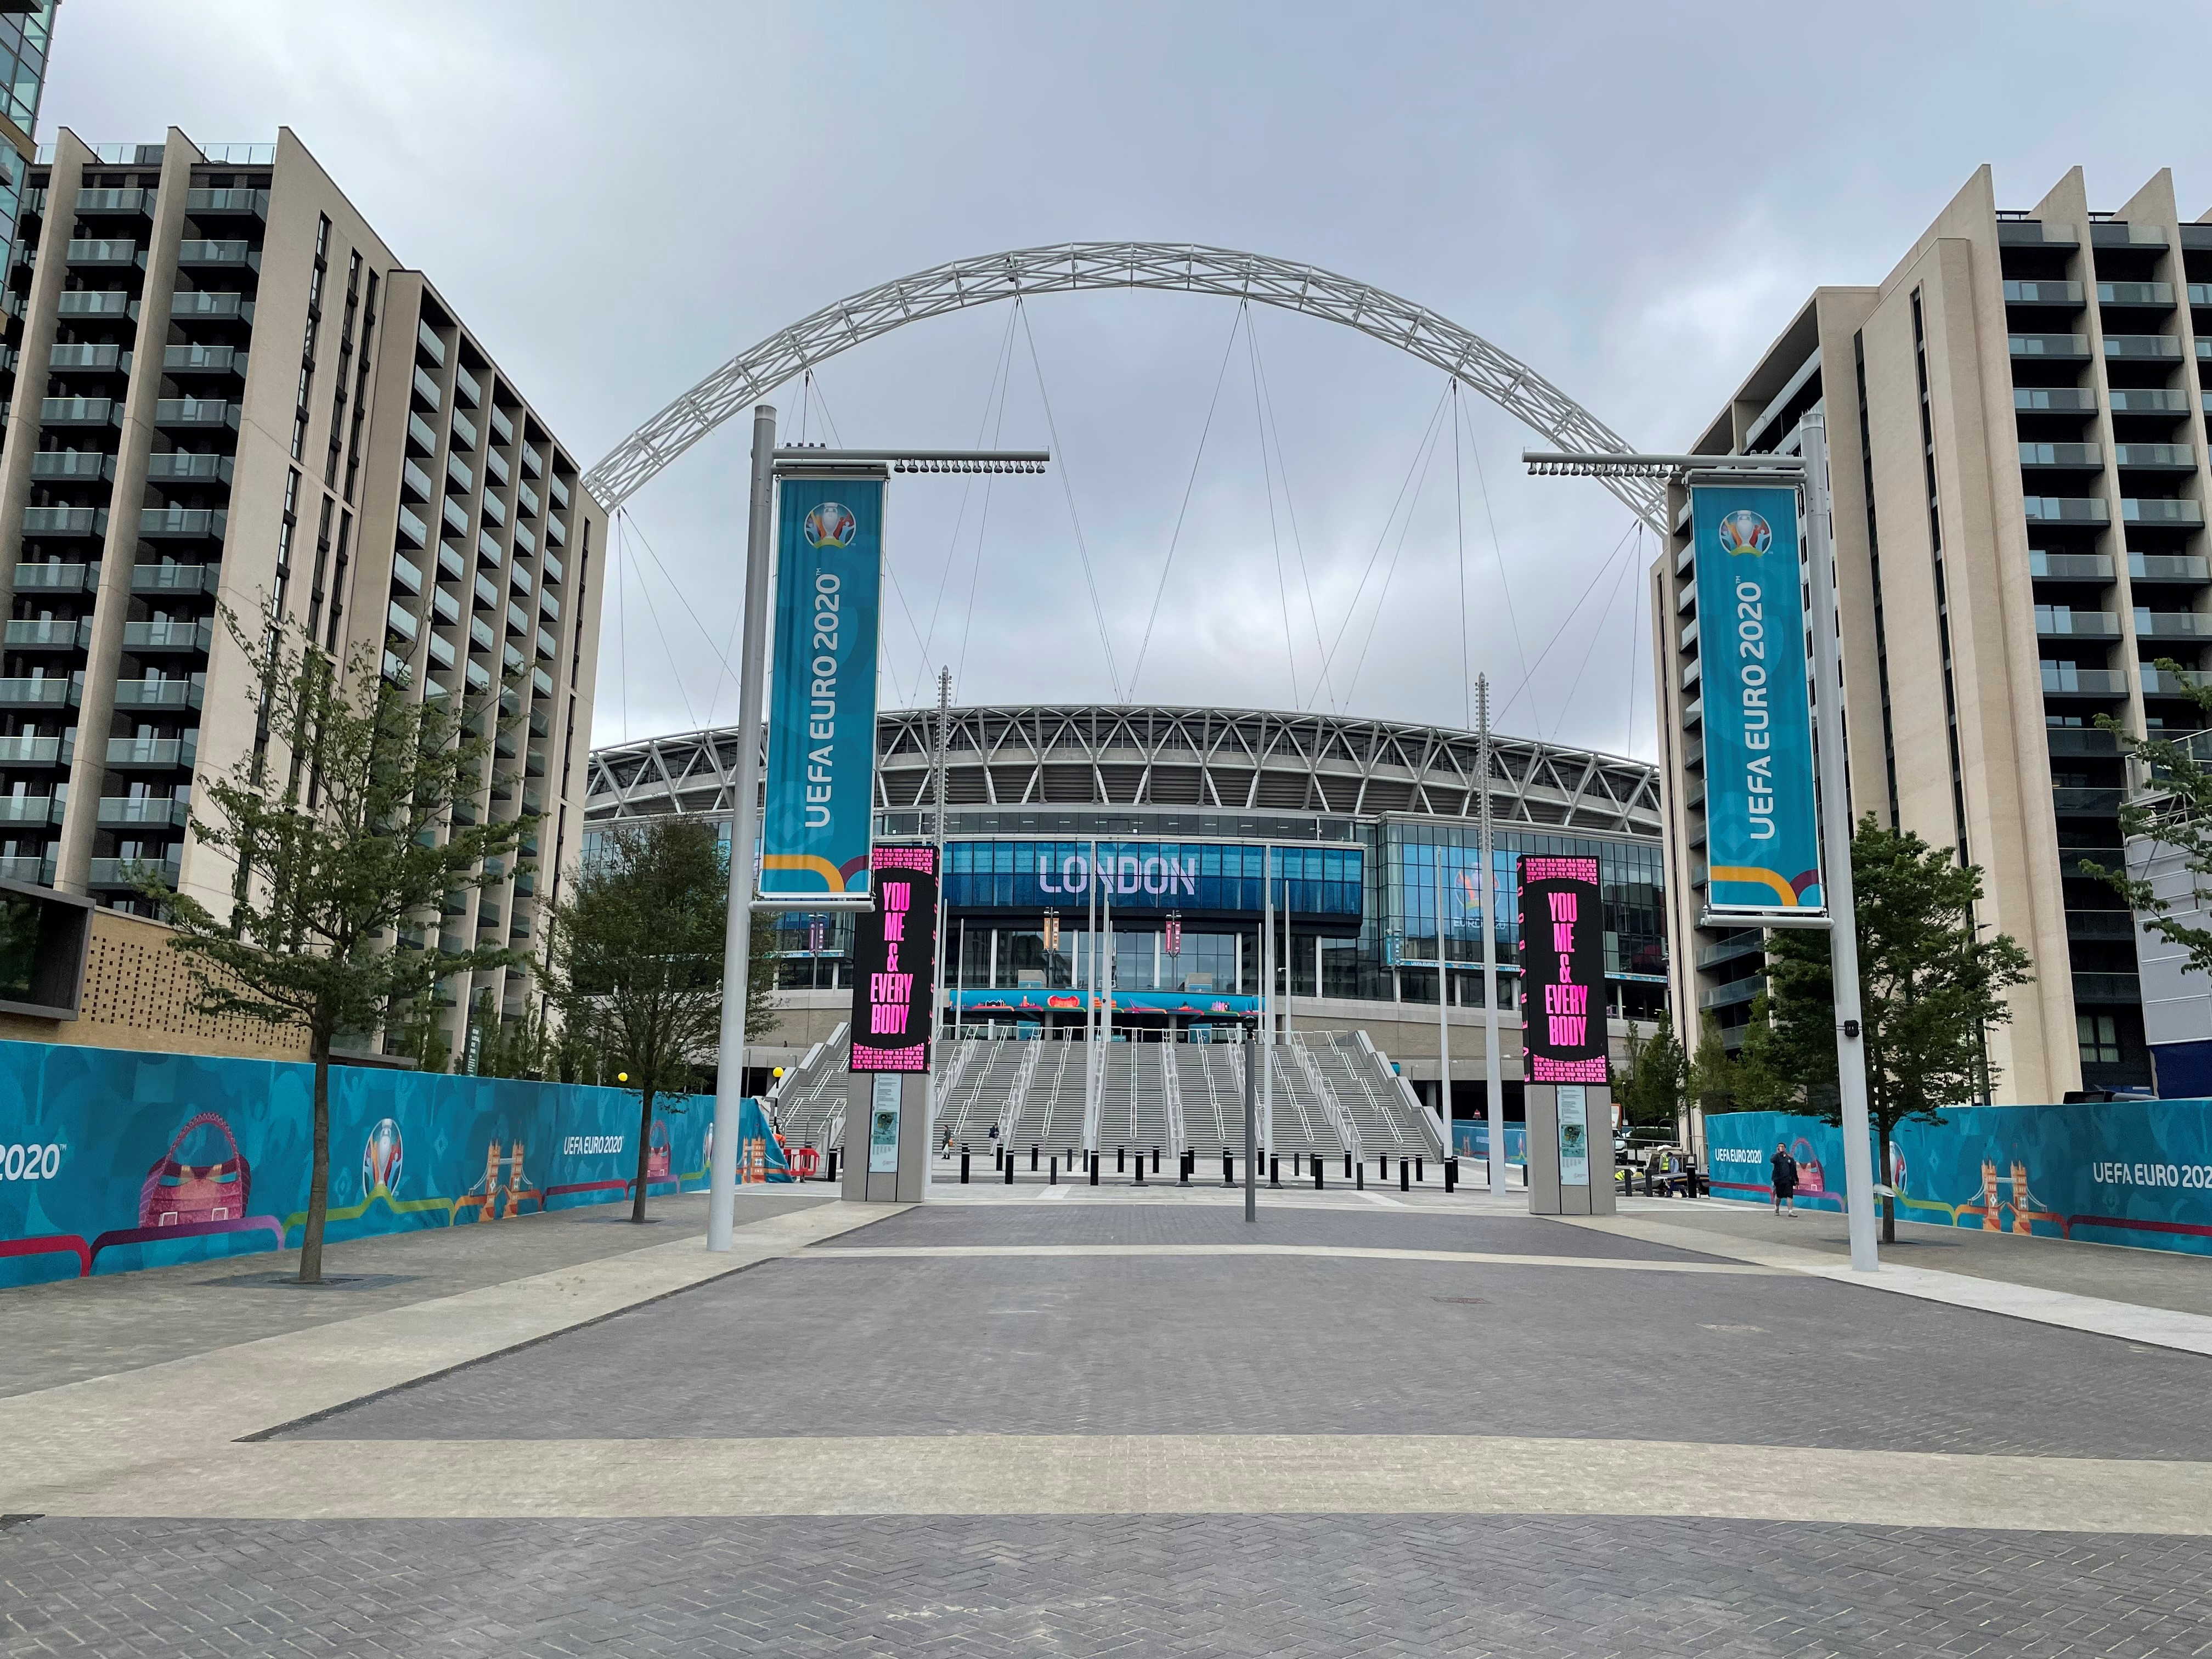 Wembley stadium from the outside.